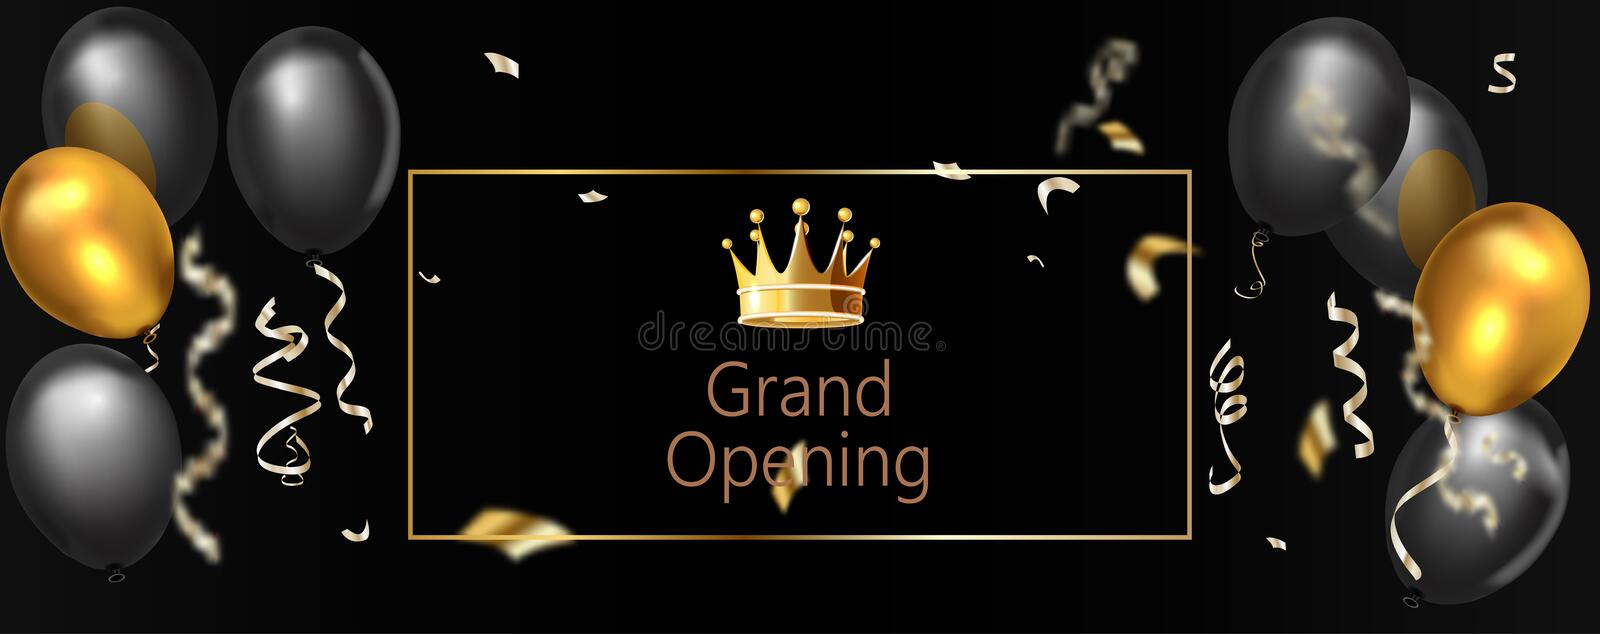 Elegant grand opening banners with black air balloons vector illustration